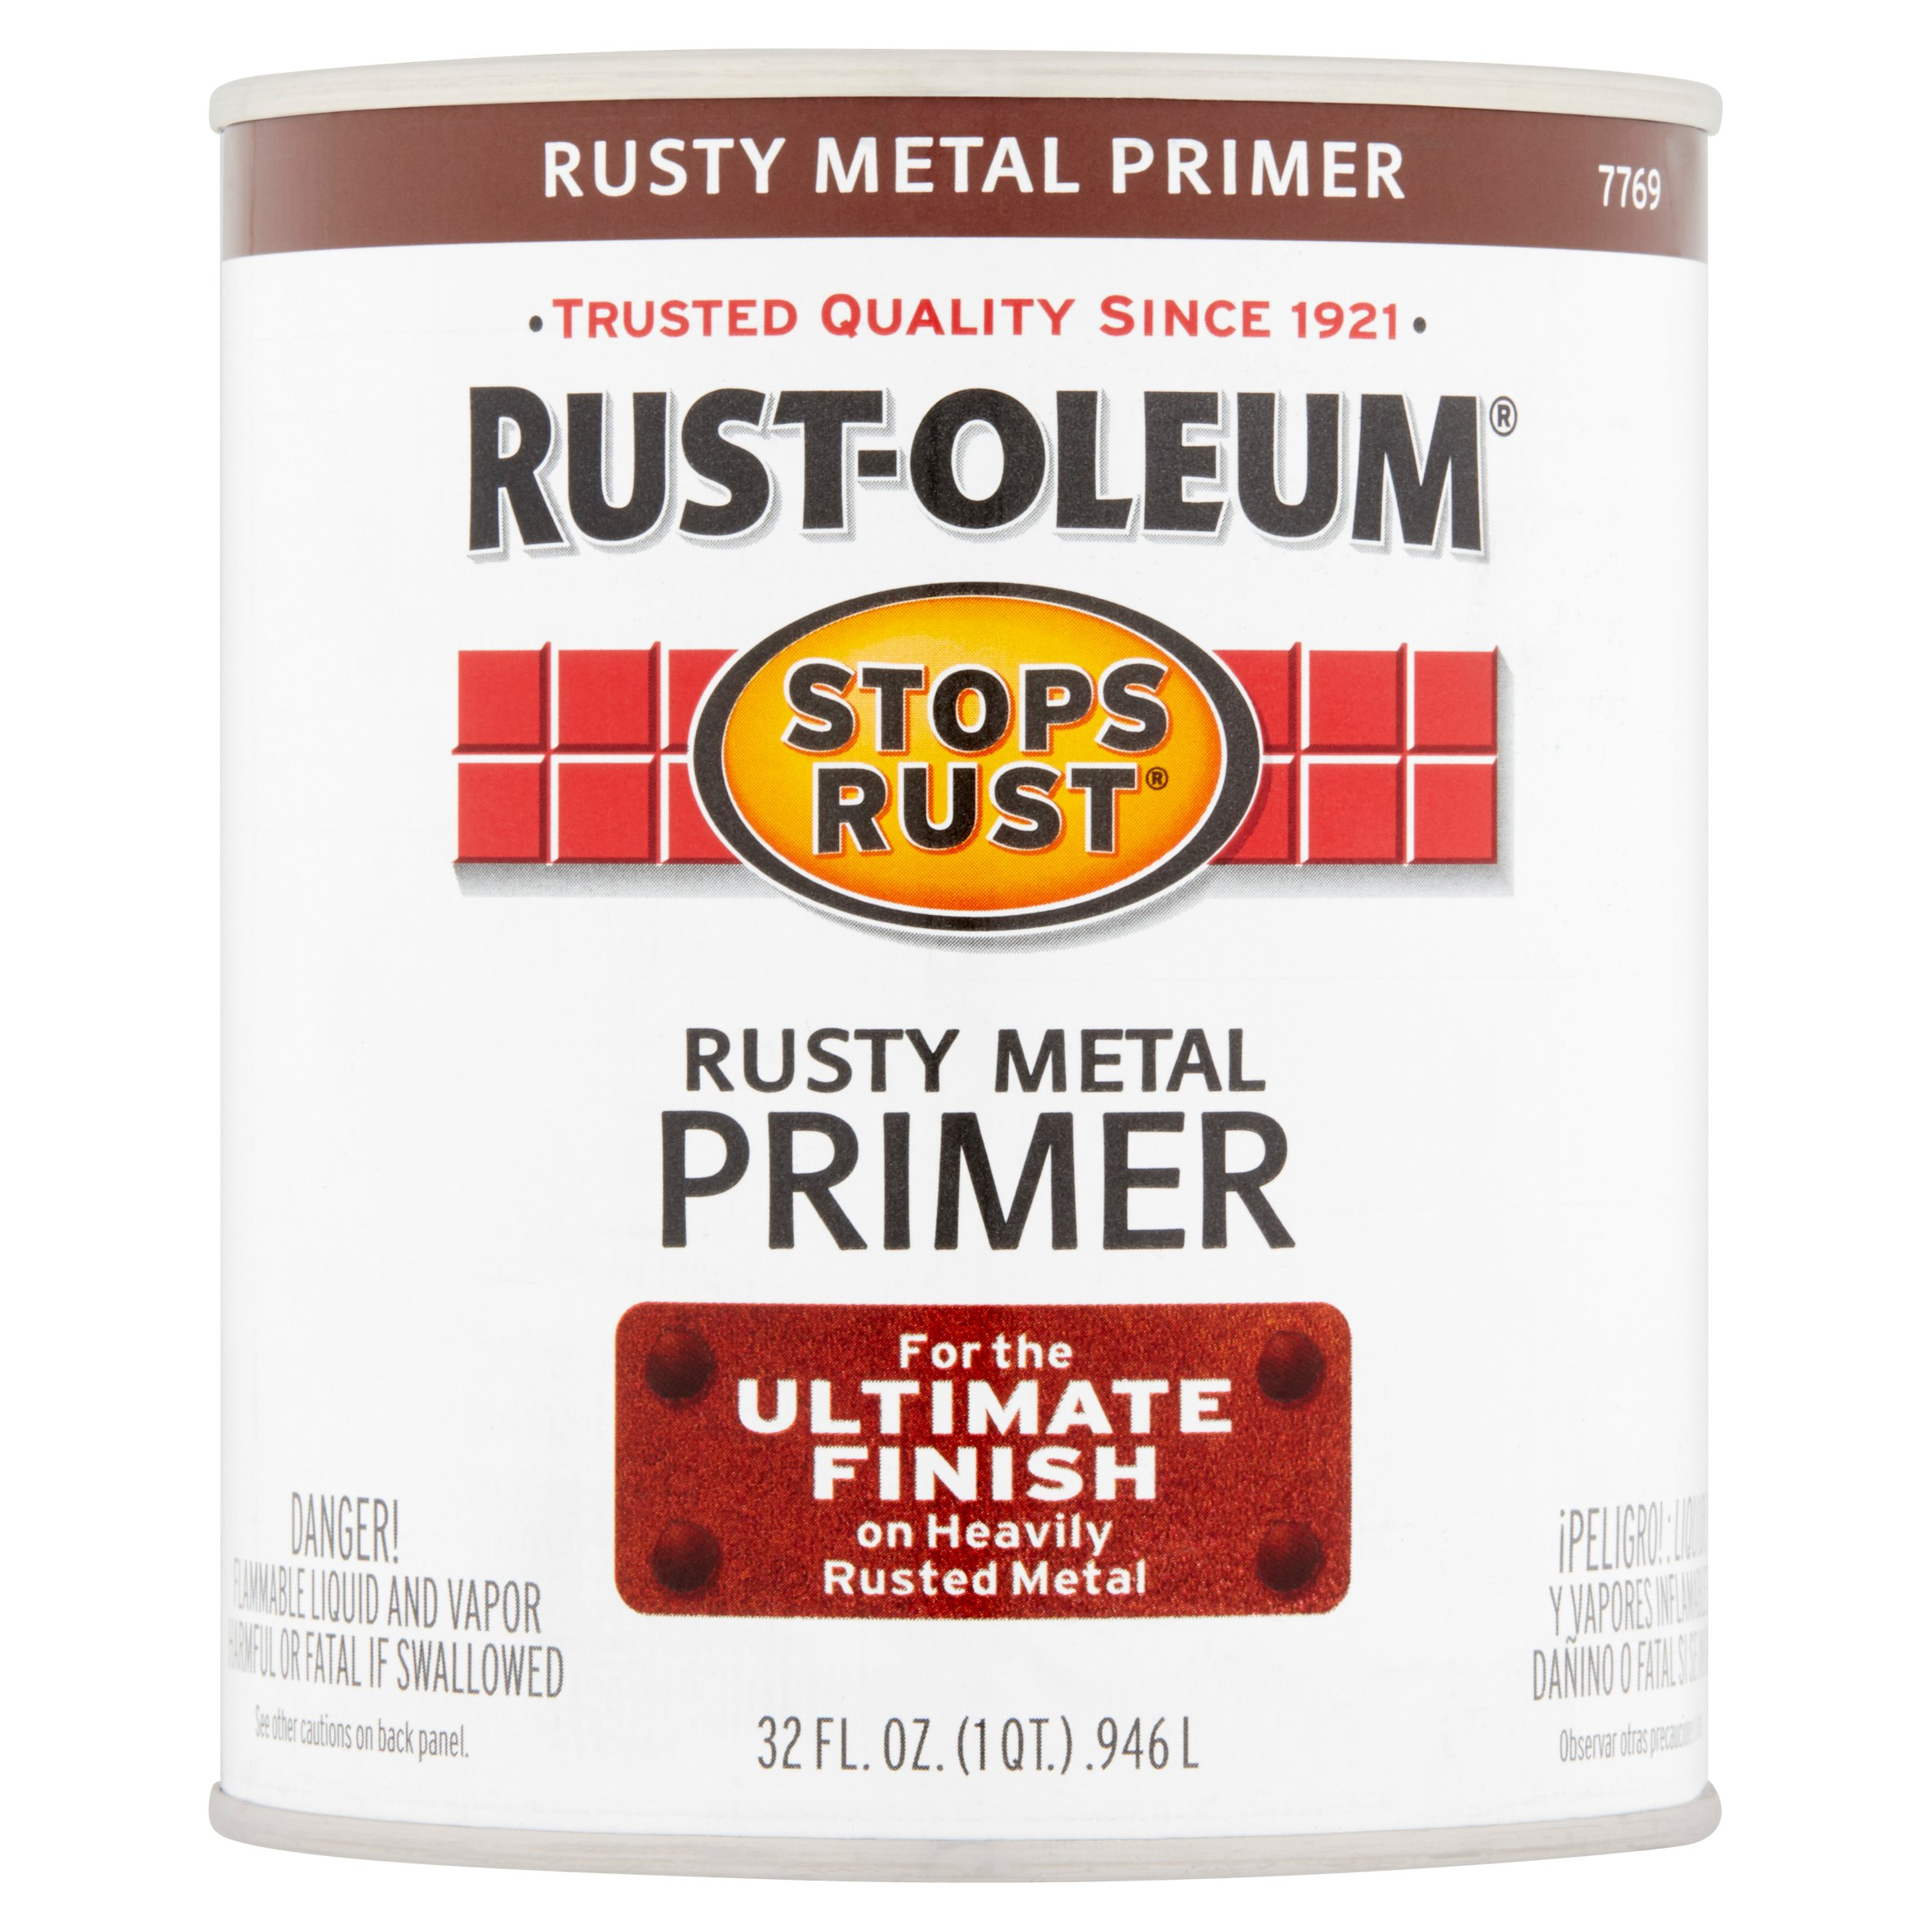 Rust-Oleum Stop Rust Rusty Metal Primer For The Ultimate Finish On Heavy Rusted Metal, 32 fl oz